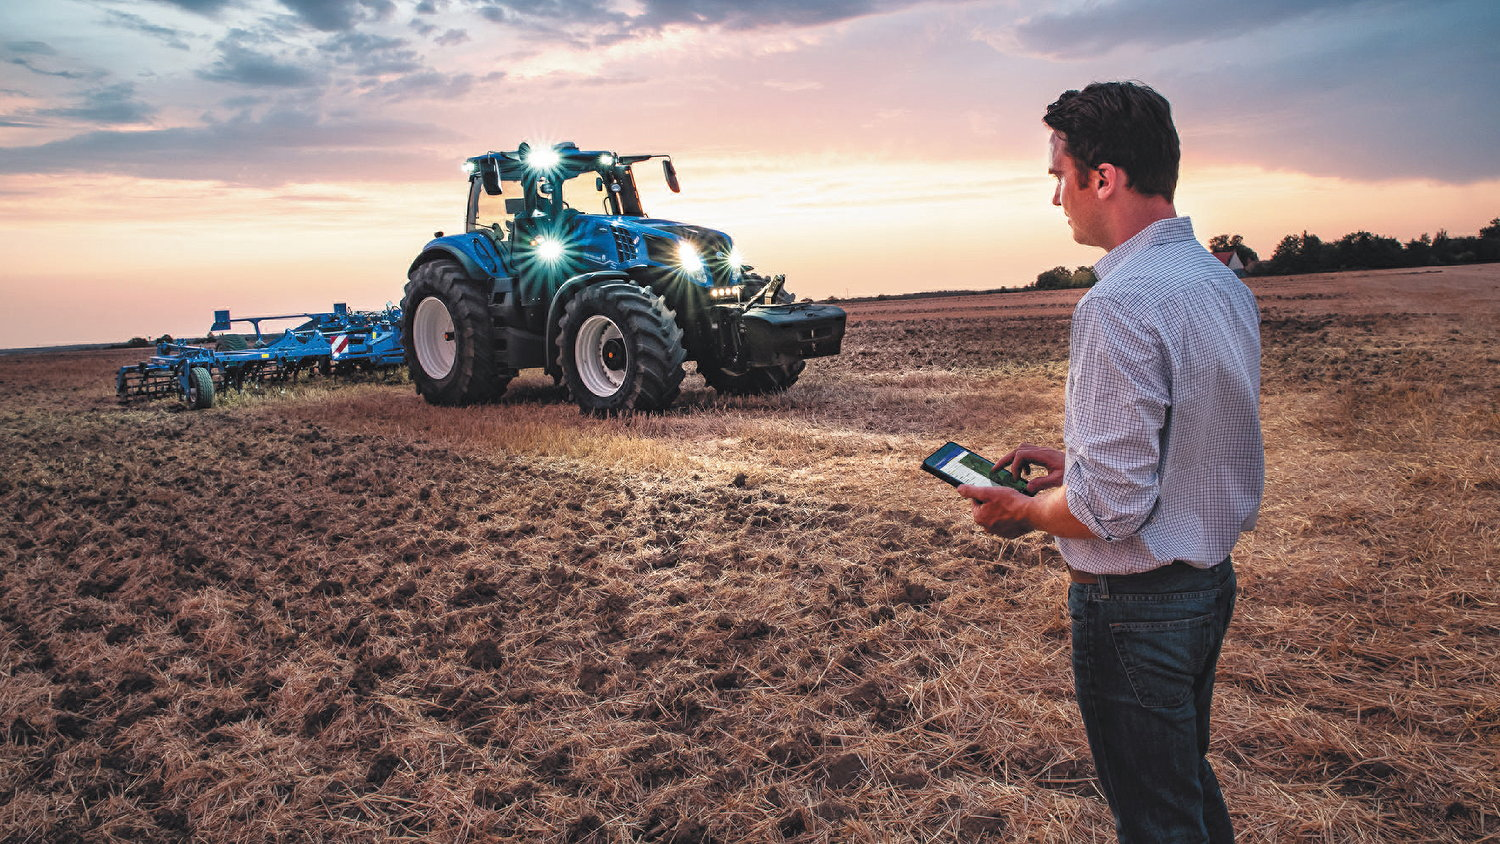 With the latest update to the MyPLM Connect Farm app, users have access to a wealth of field information when they select a map from the main map screen